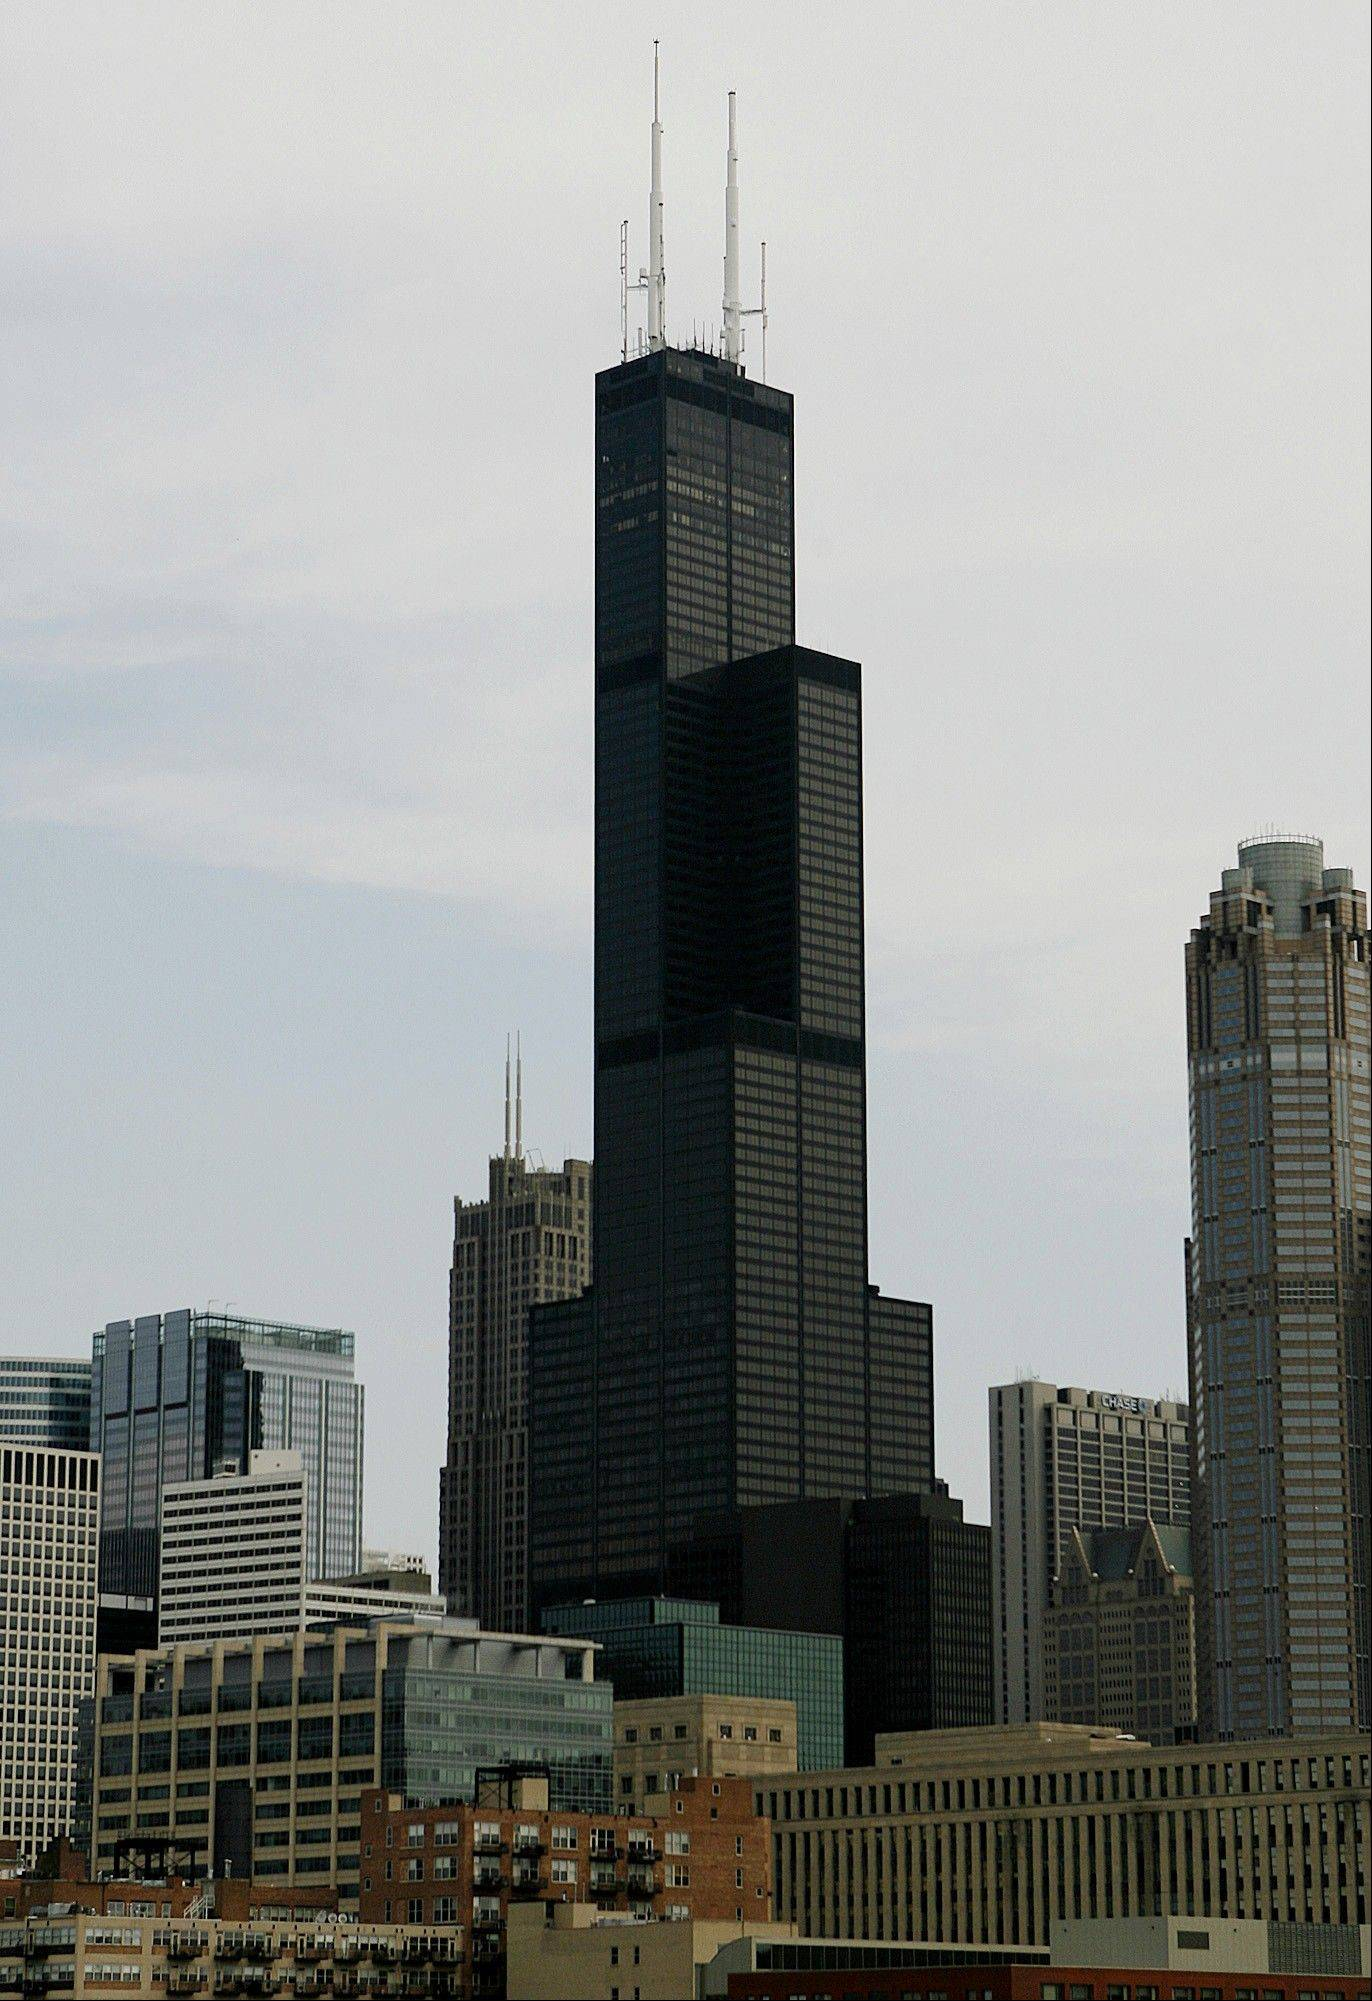 United Airlines is consolidating its premises at Chicago's Willis Tower.